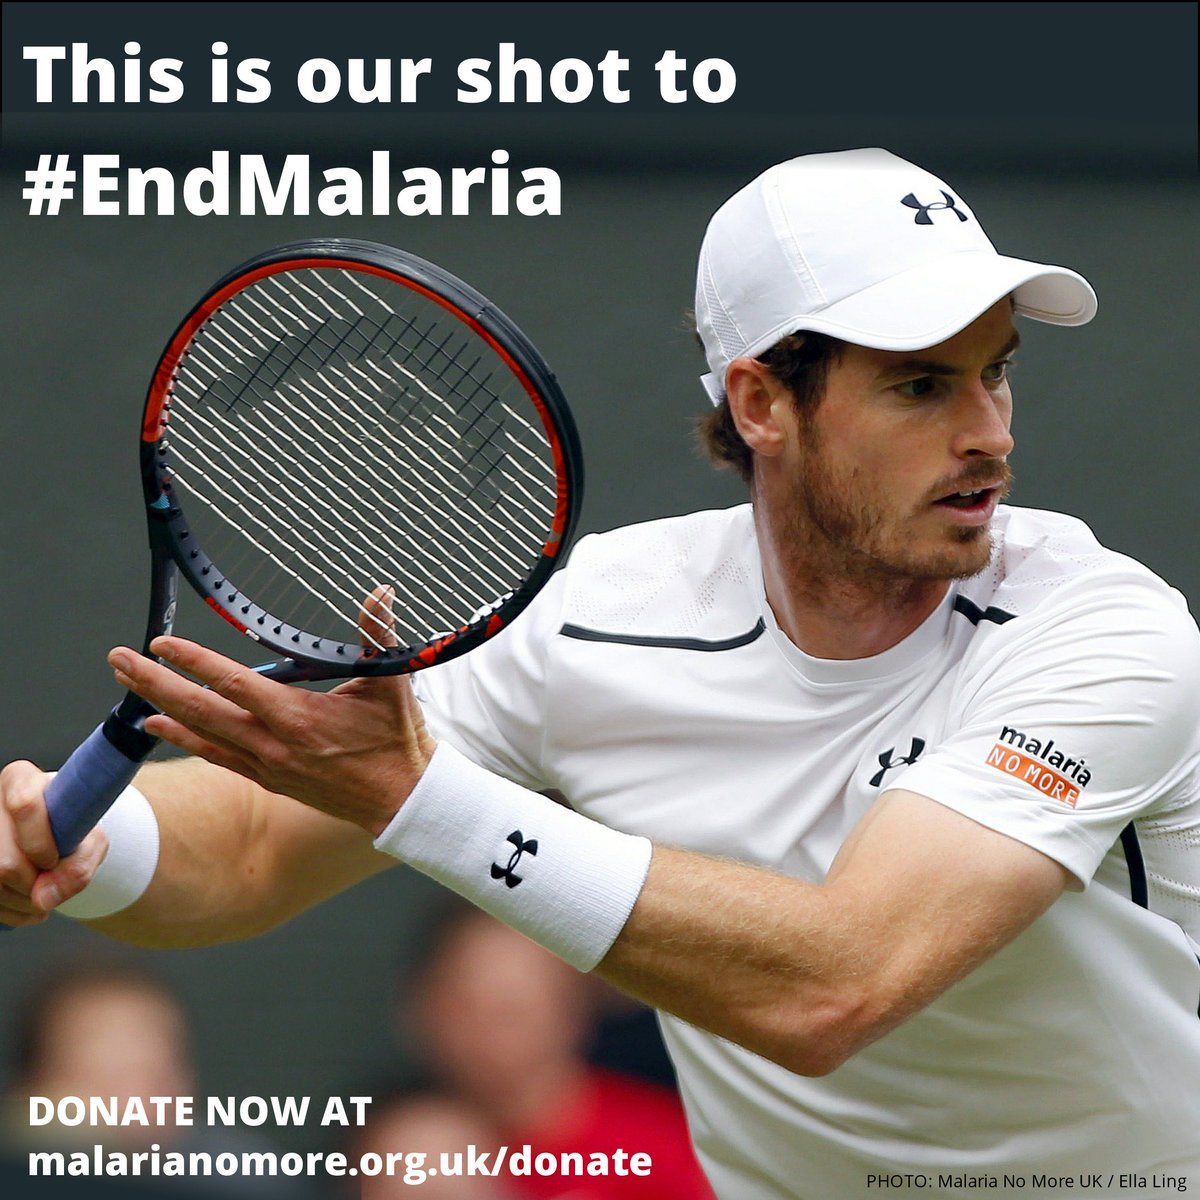 So proud Murray is sporting our logo in the #Wimbledon finals! You can help #EndMalaria too https://t.co/3ljgn7ig4p https://t.co/DT6oYWxXyk